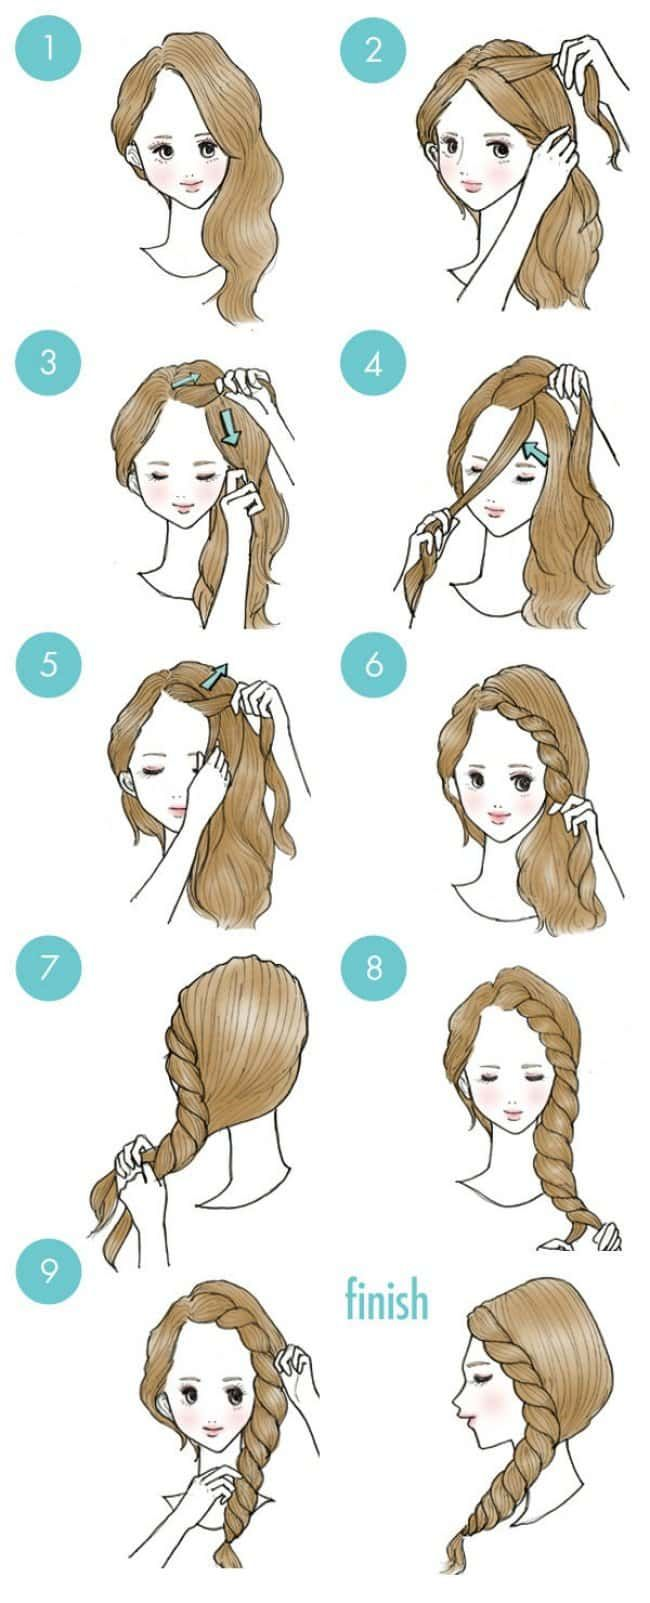 20 Cute Hairstyles That Are Extremely Easy To Do | Braided